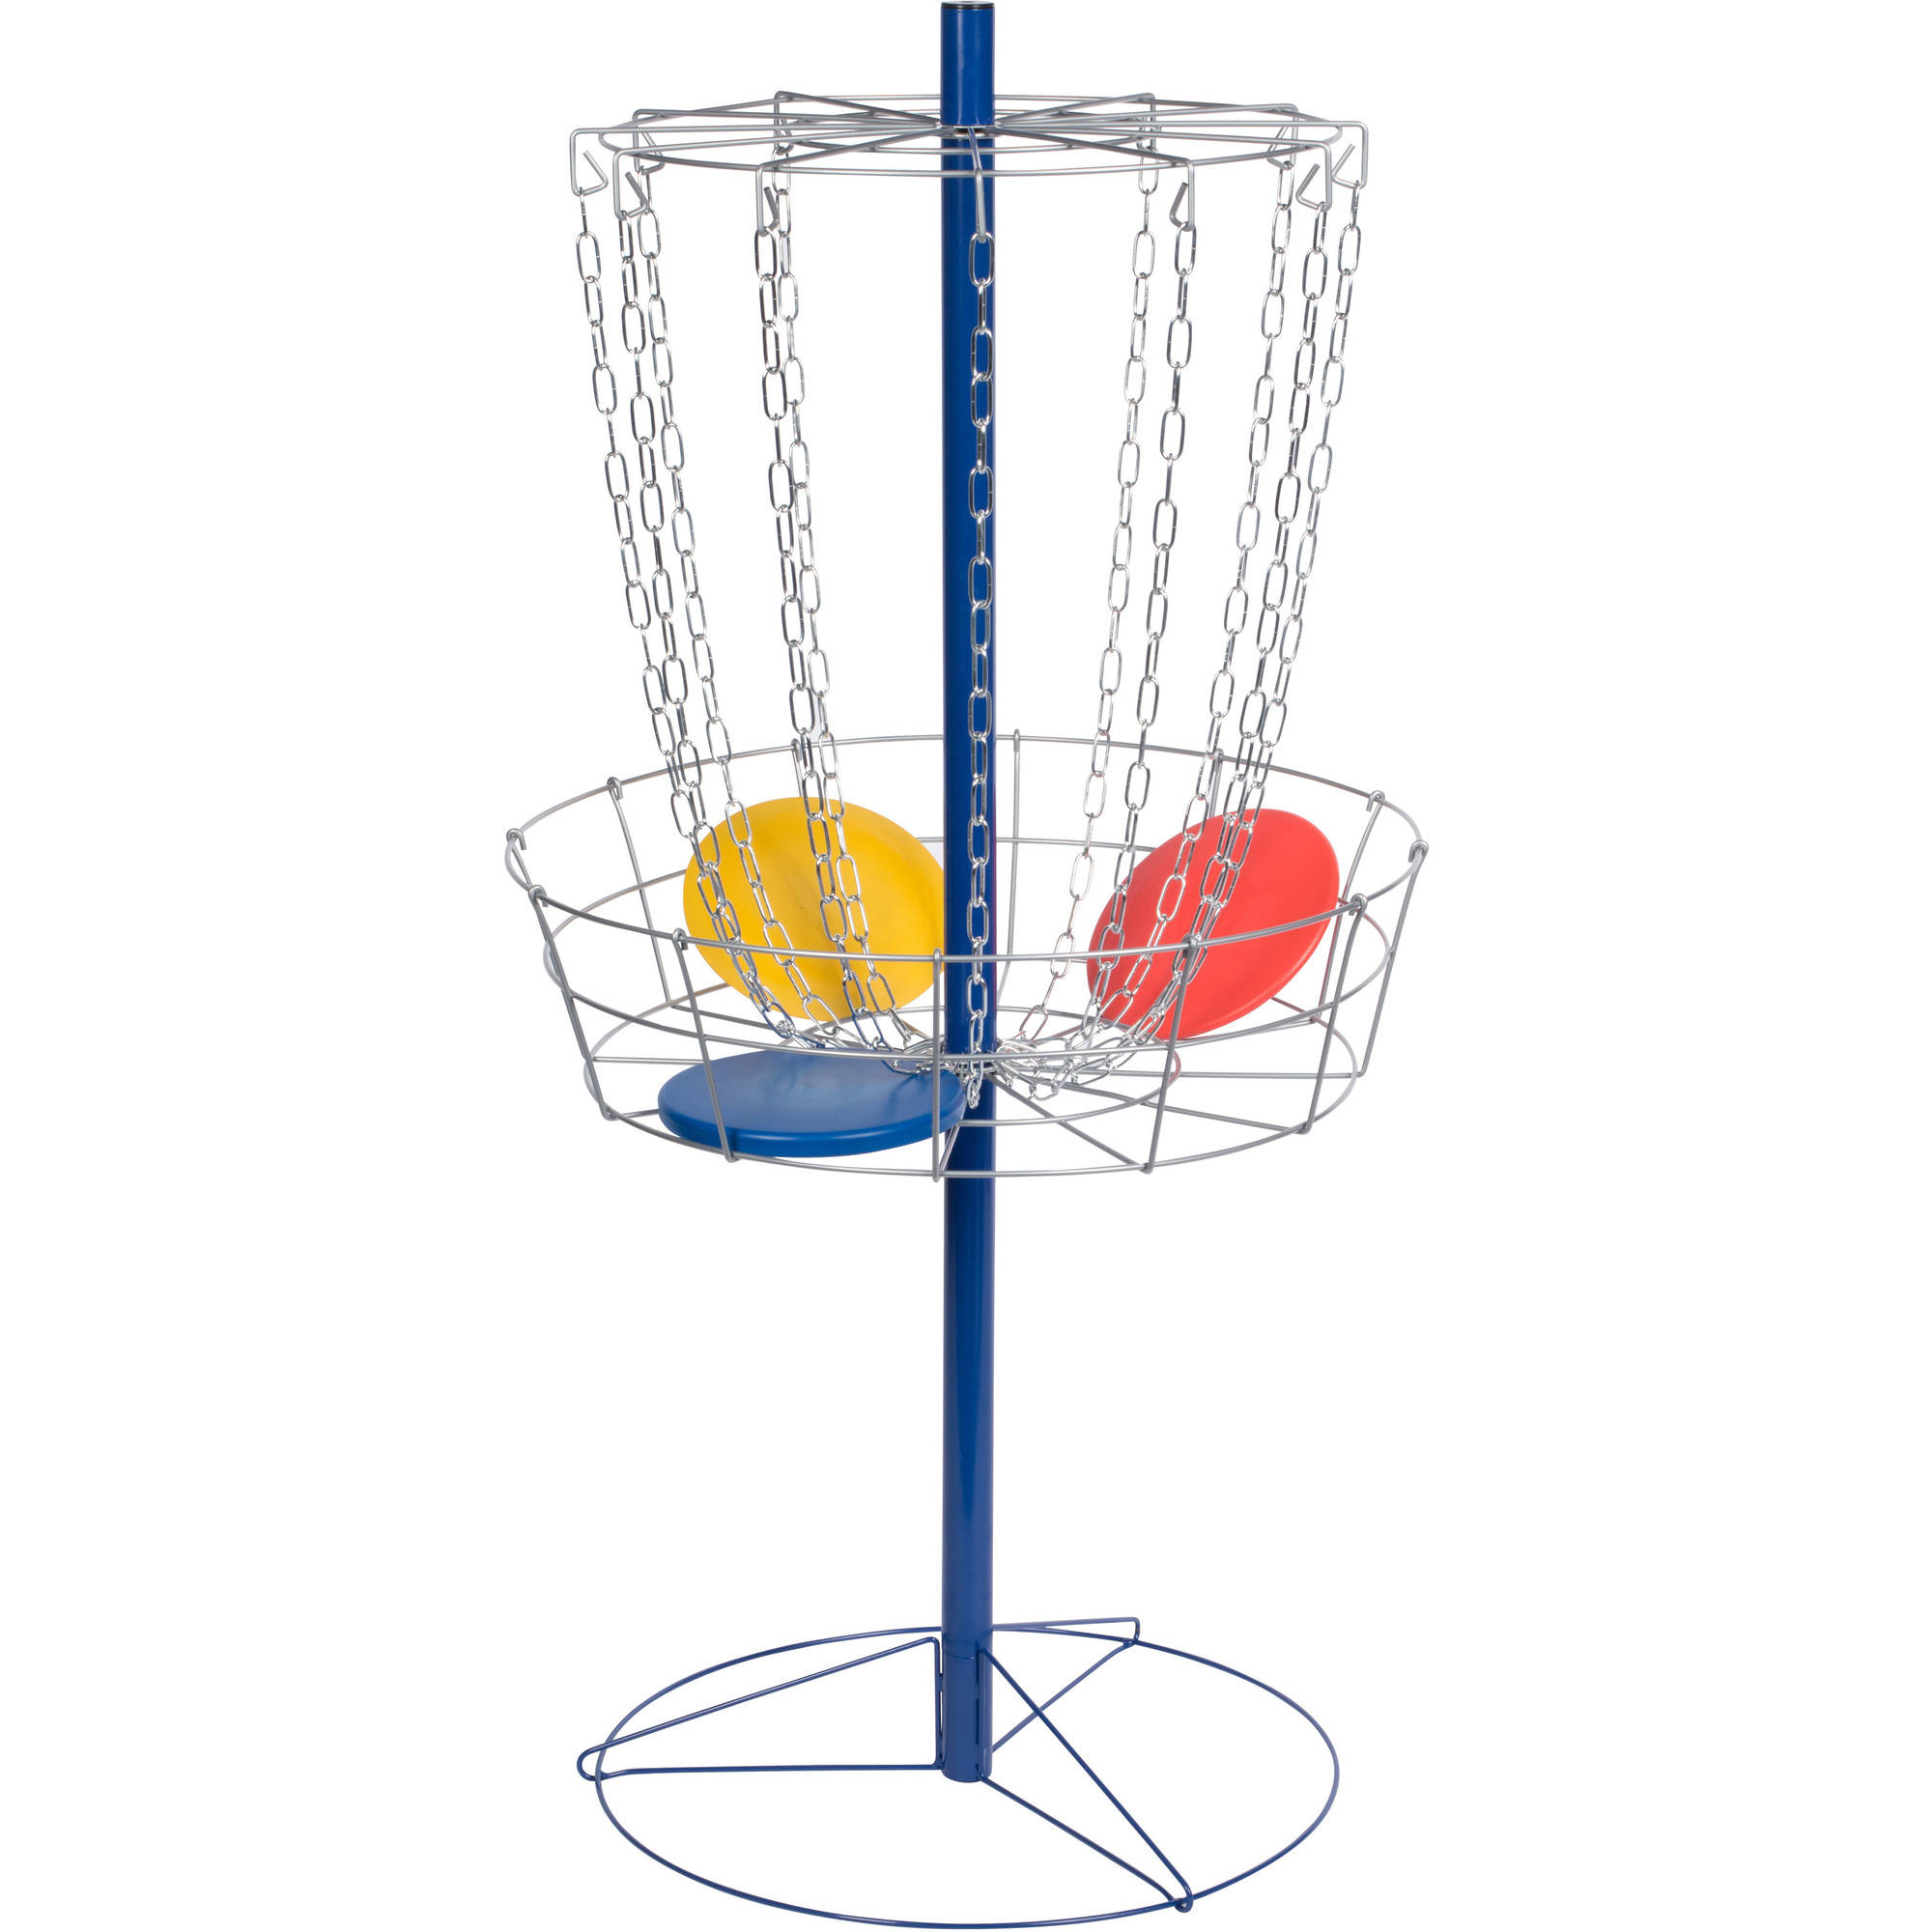 Portable Metal Disc Frisbee Golf Goal Set Comes with 9 Discs - By Trademark Innovations